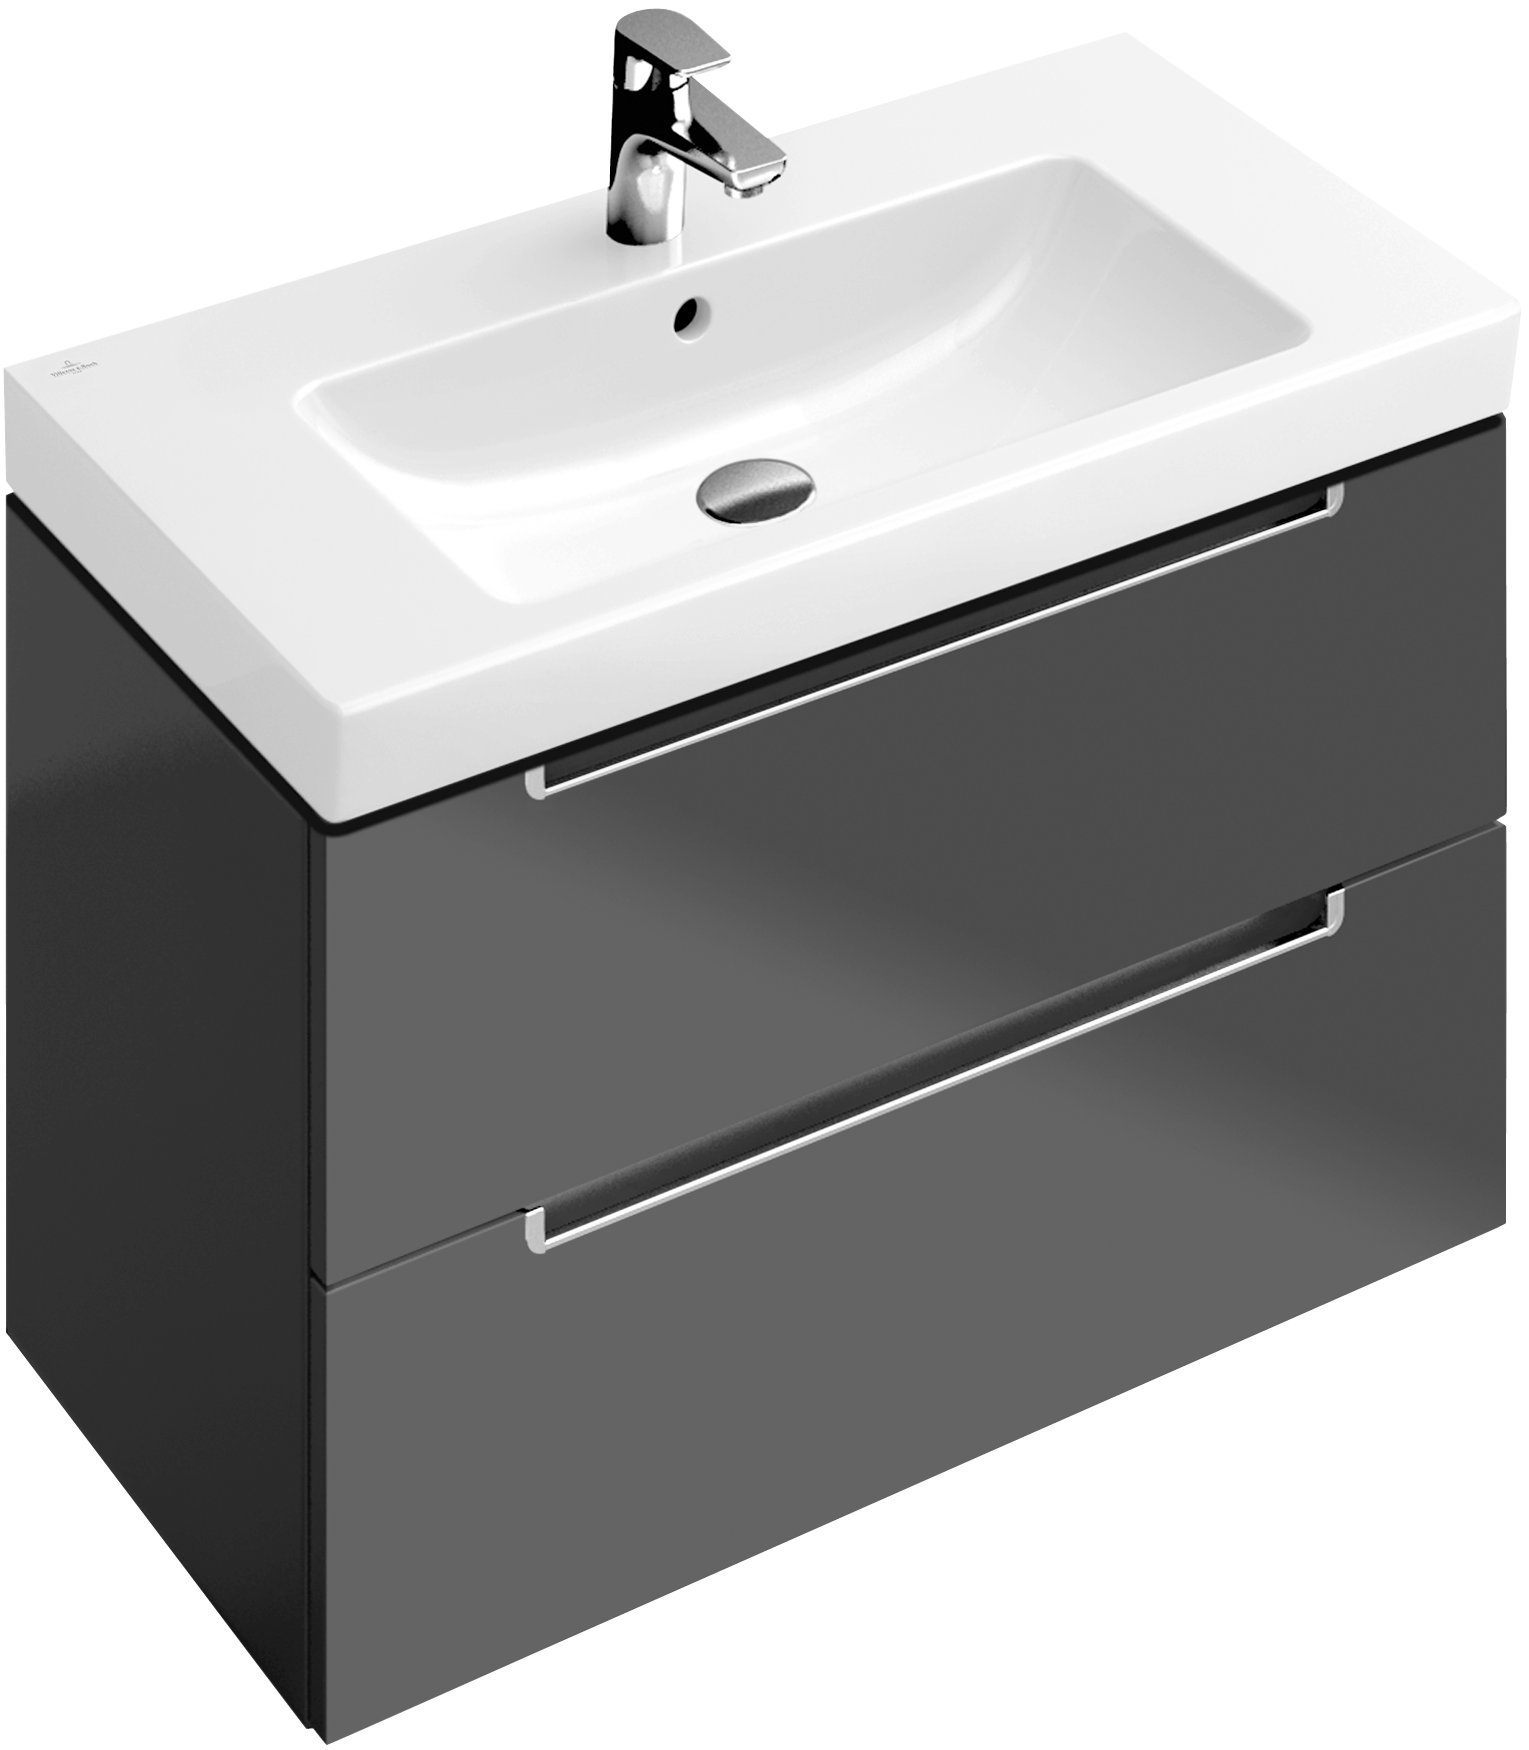 vanity unit with sink. Subway 2 0 Bathroom furniture  Vanity unit for washbasin sink cabinets Productdetail